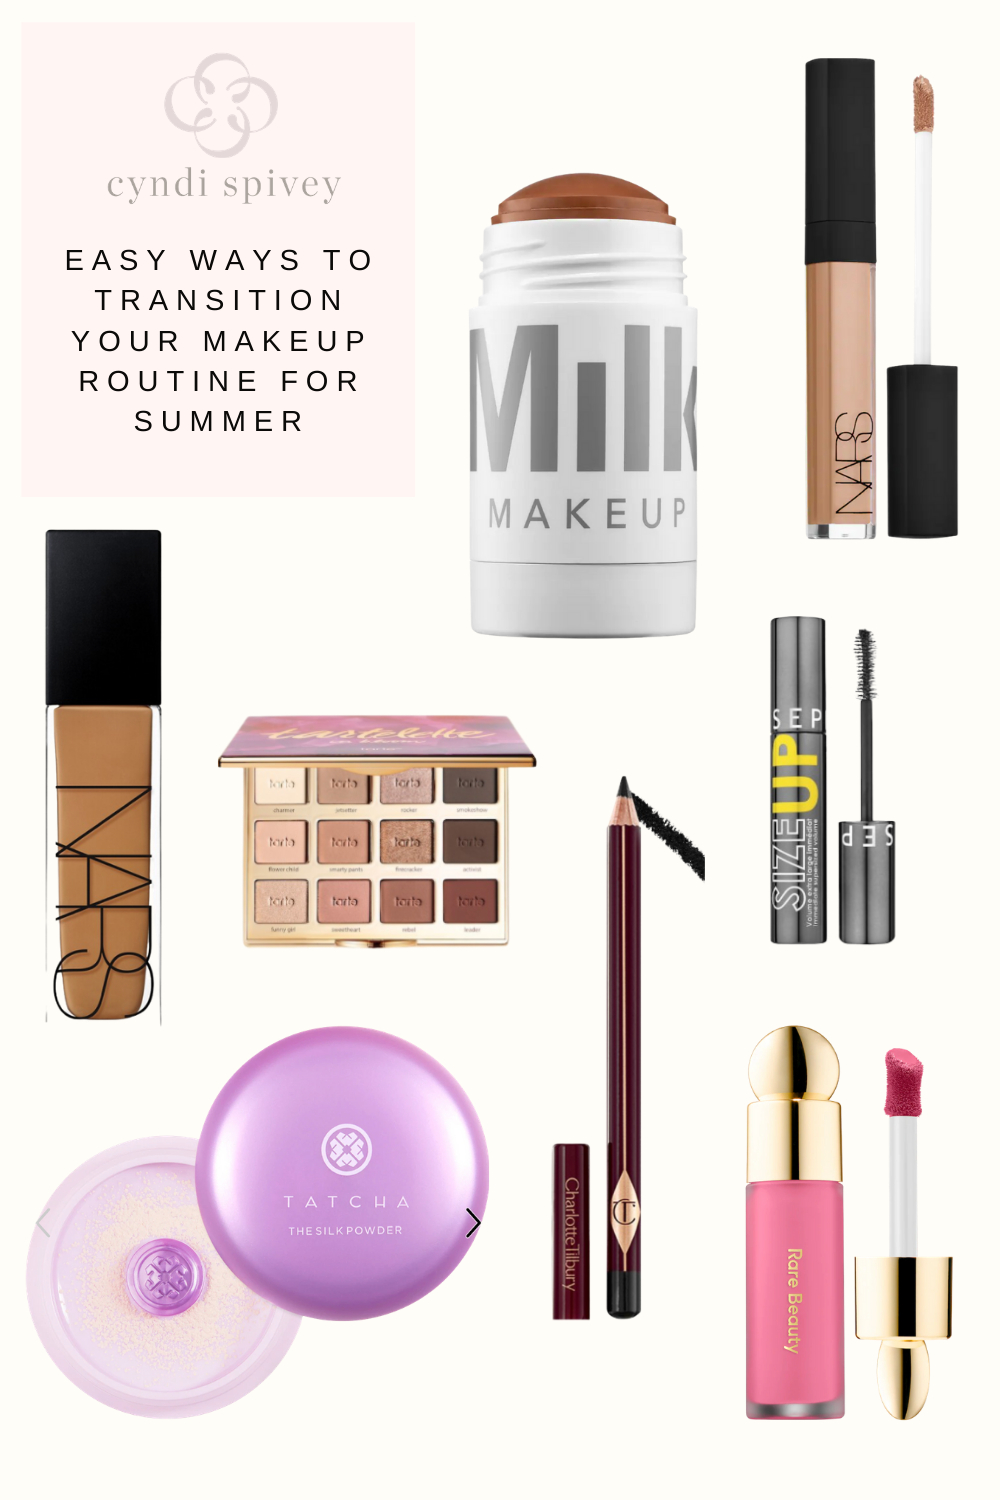 Easy Ways to Transition Your Makeup Routine for Summer